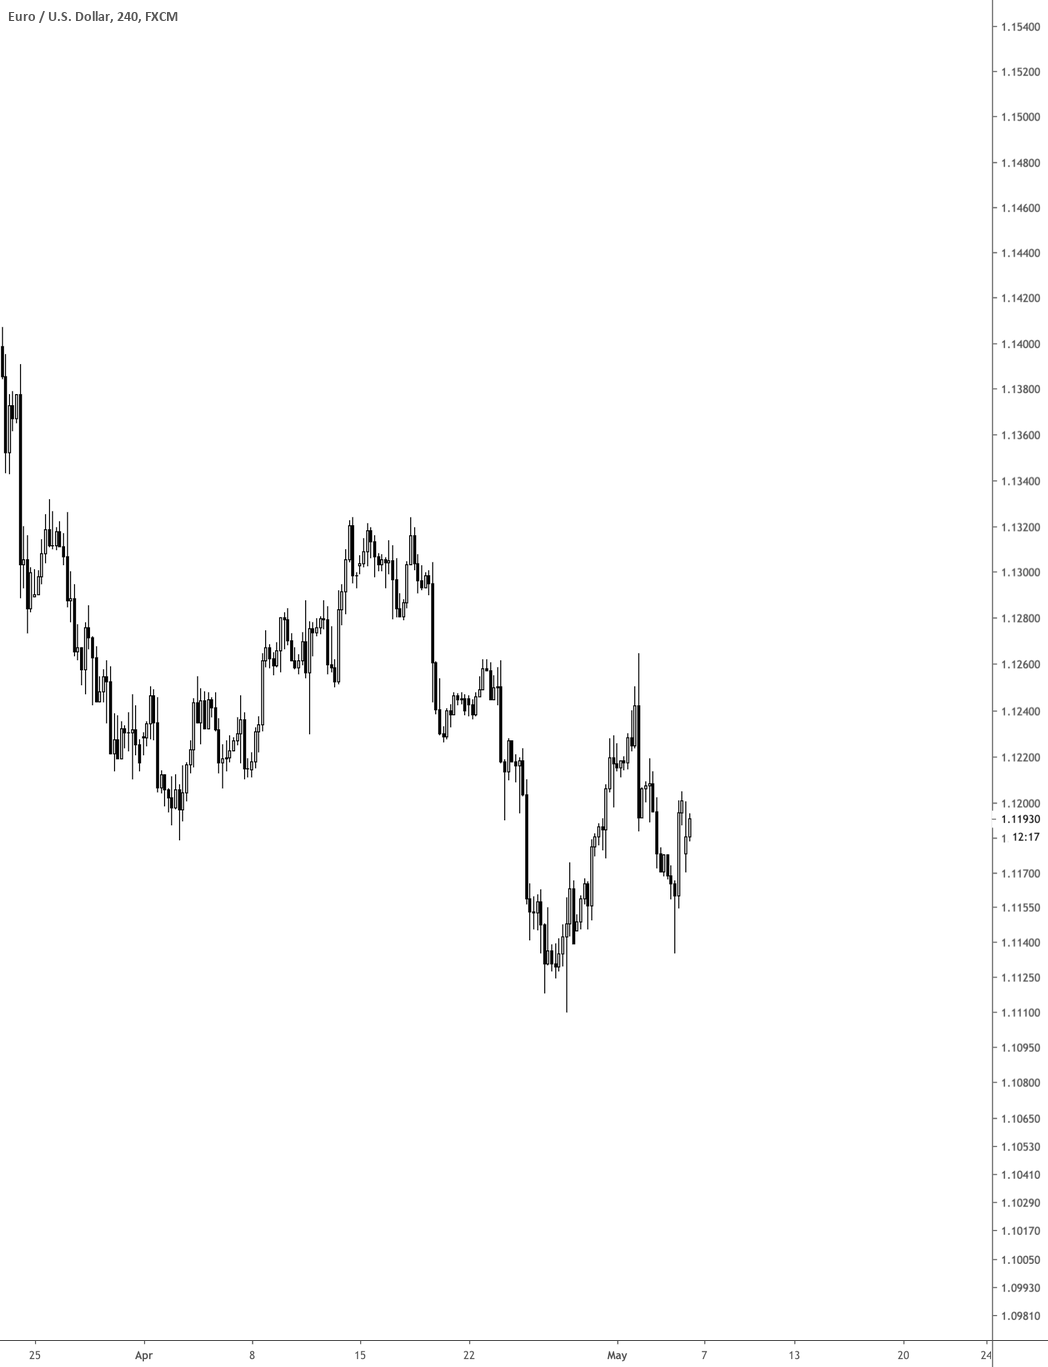 Template for trading for FX:EURUSD by BFT_AlgoAccess